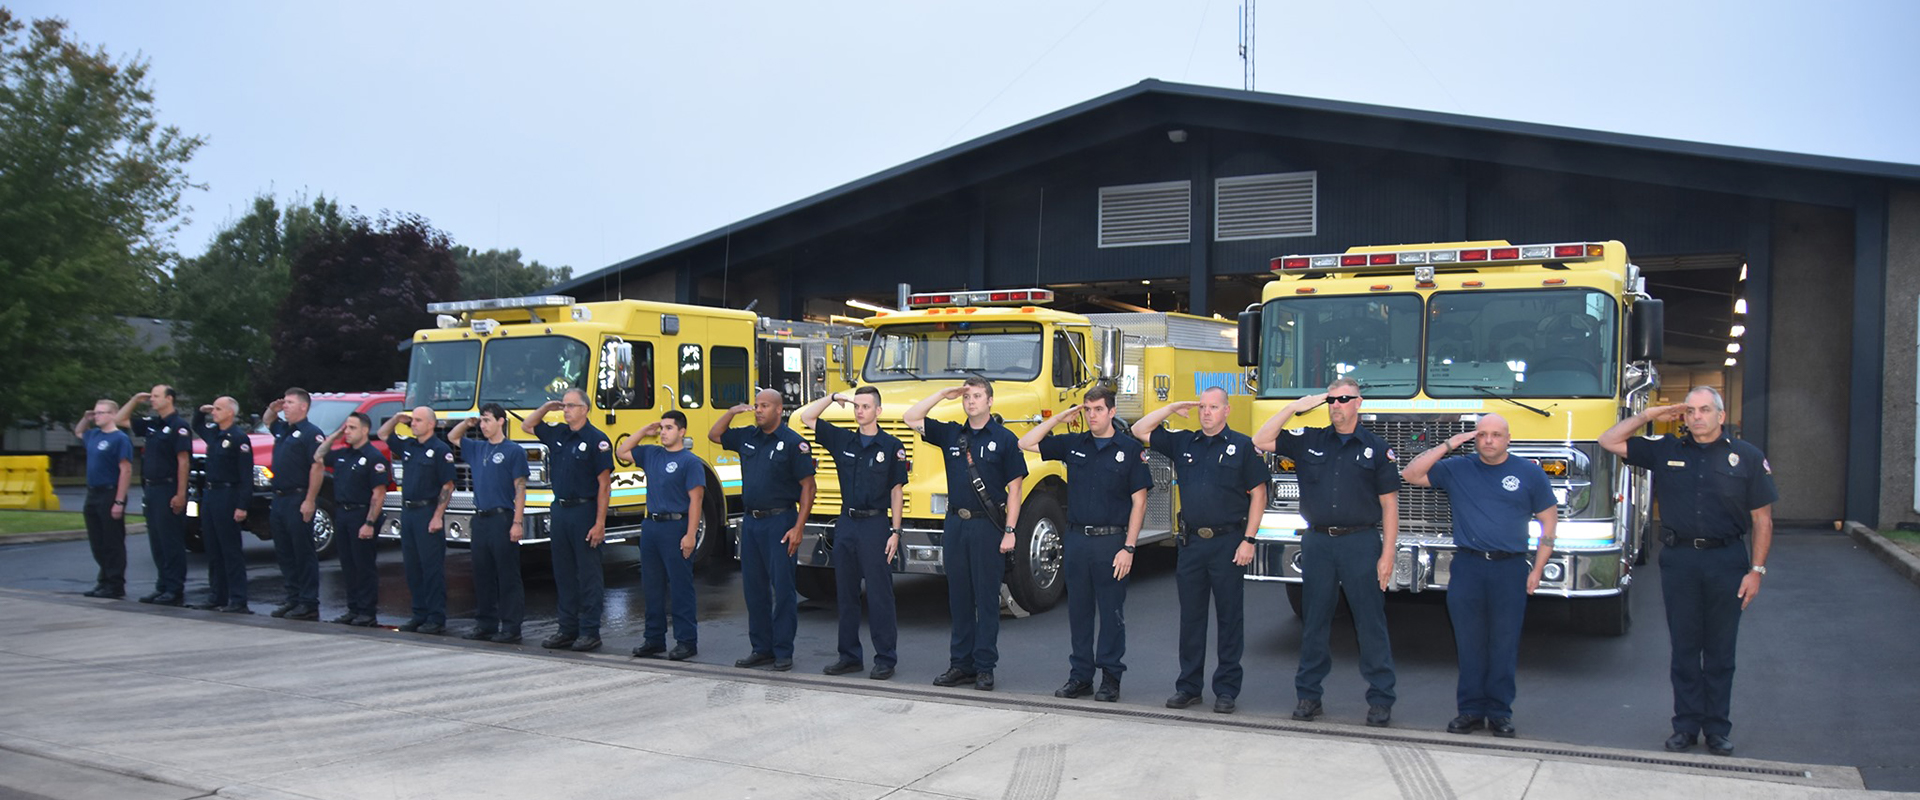 Group of firefighters saluting